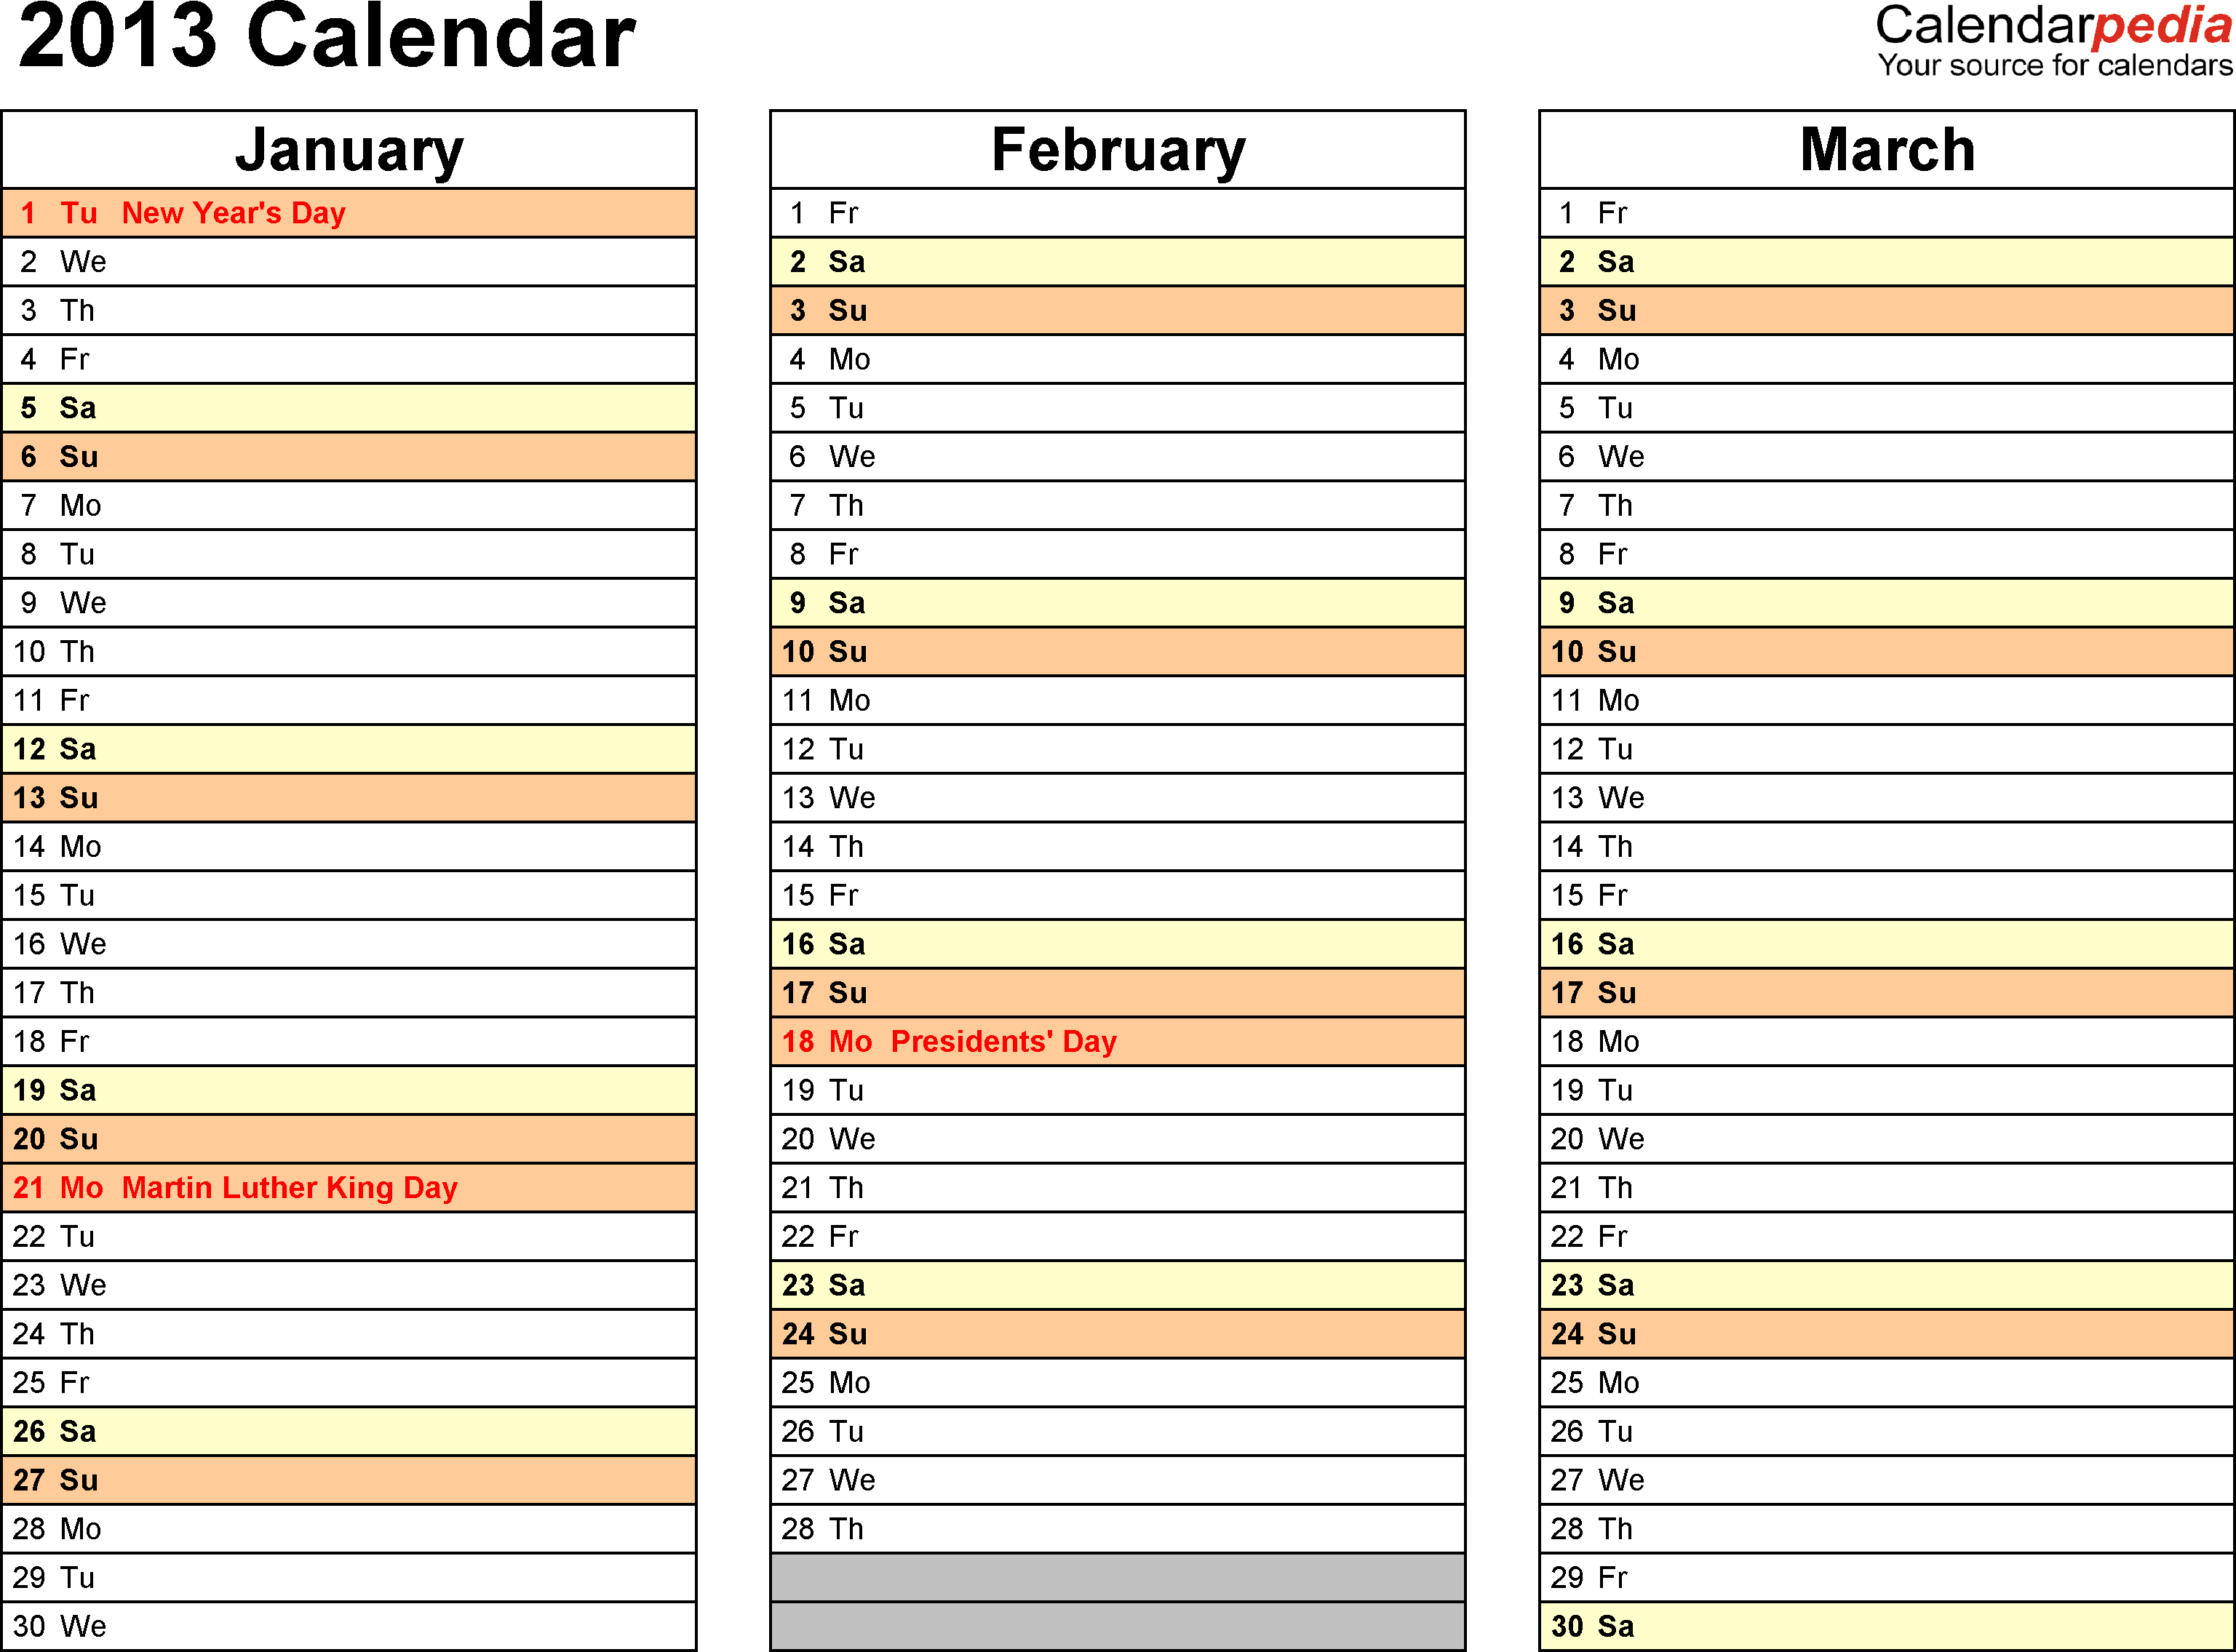 Download Word template for 2013 calendar template 6: landscape orientation, 4 pages, months horizontally, days vertically, with US federal holidays 2013, paper format: US letter